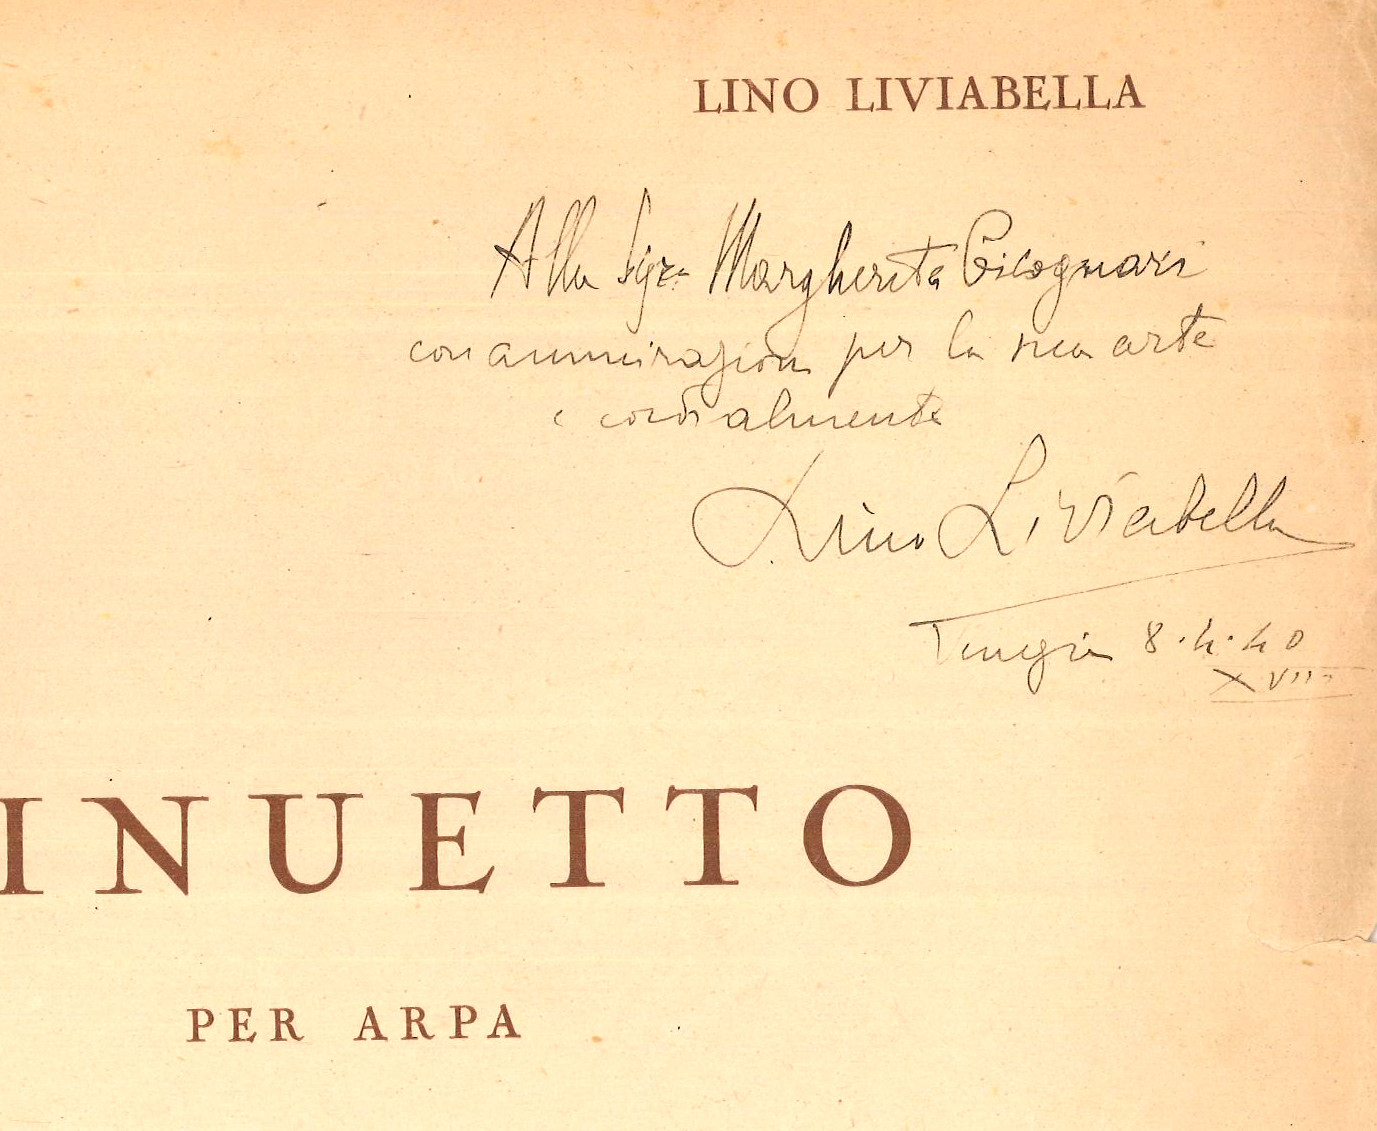 Minuetto for harp by Lino Liviabella, with autograph dedication to Cicognari, 1940. E03089.